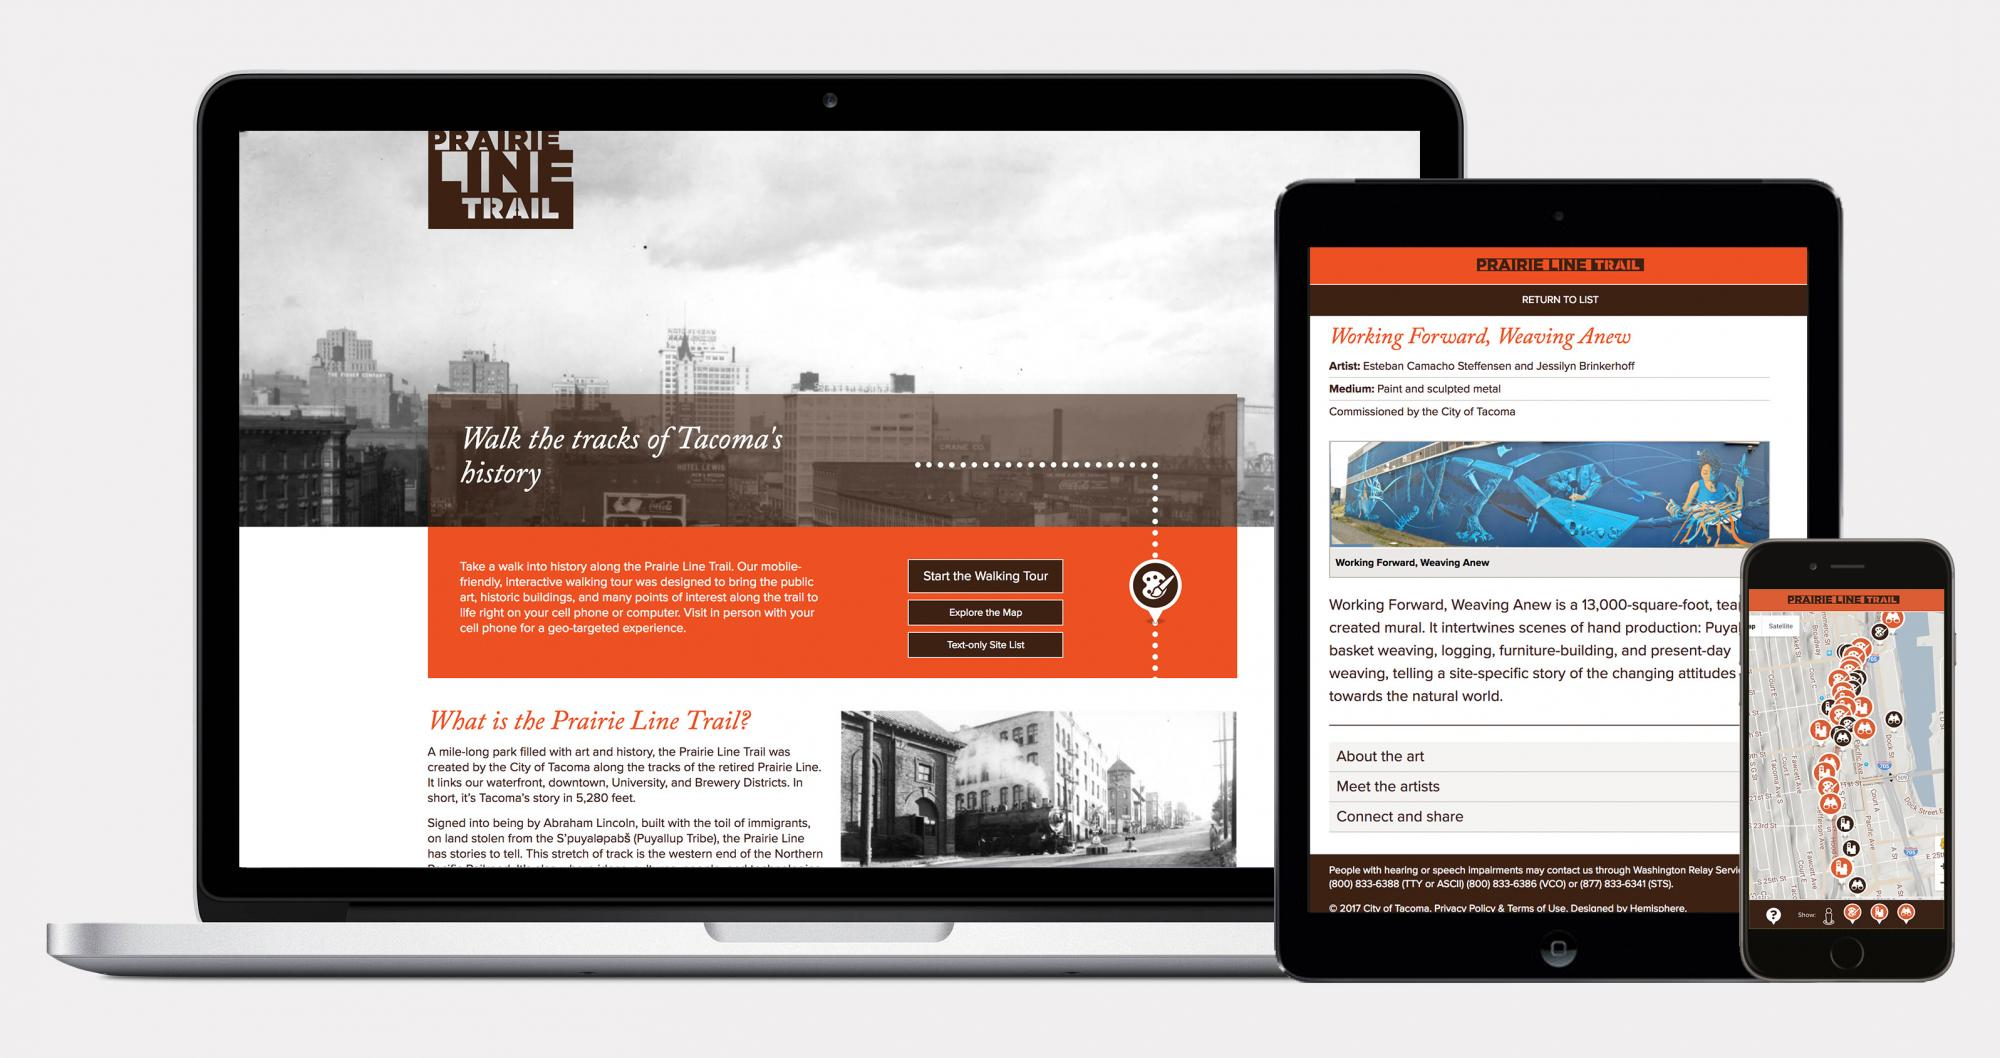 Prairie Line Trail website homepage